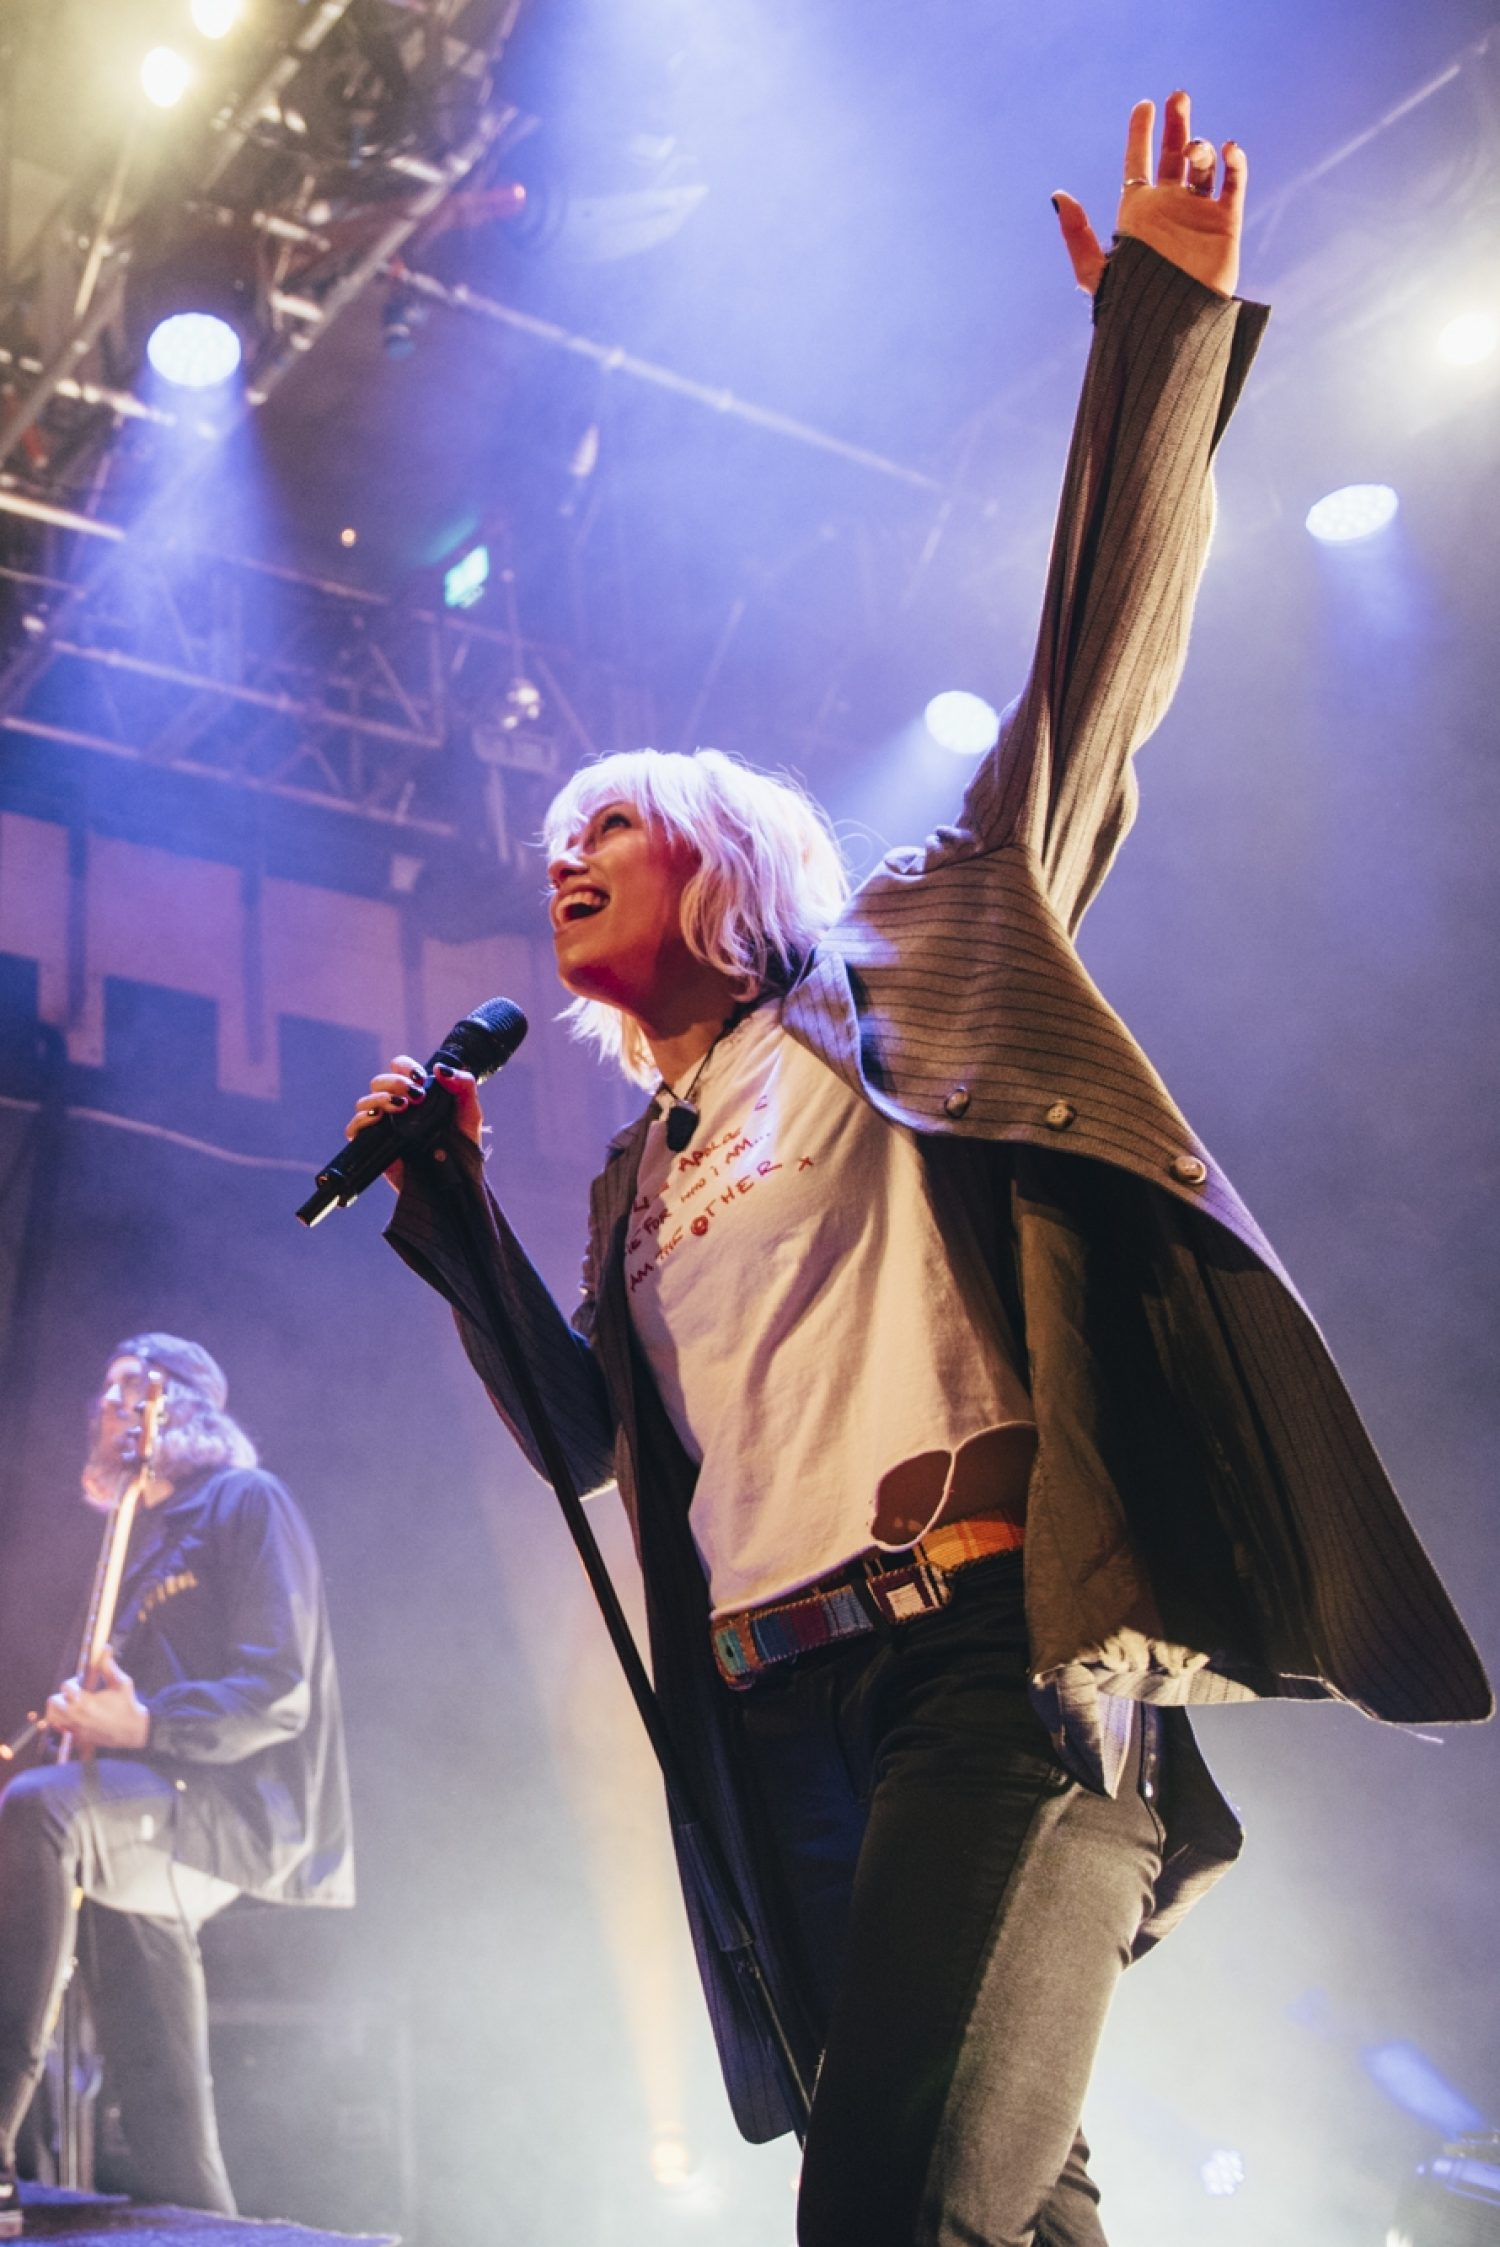 Tonight Alive celebrate their journey at London's o2 Islington